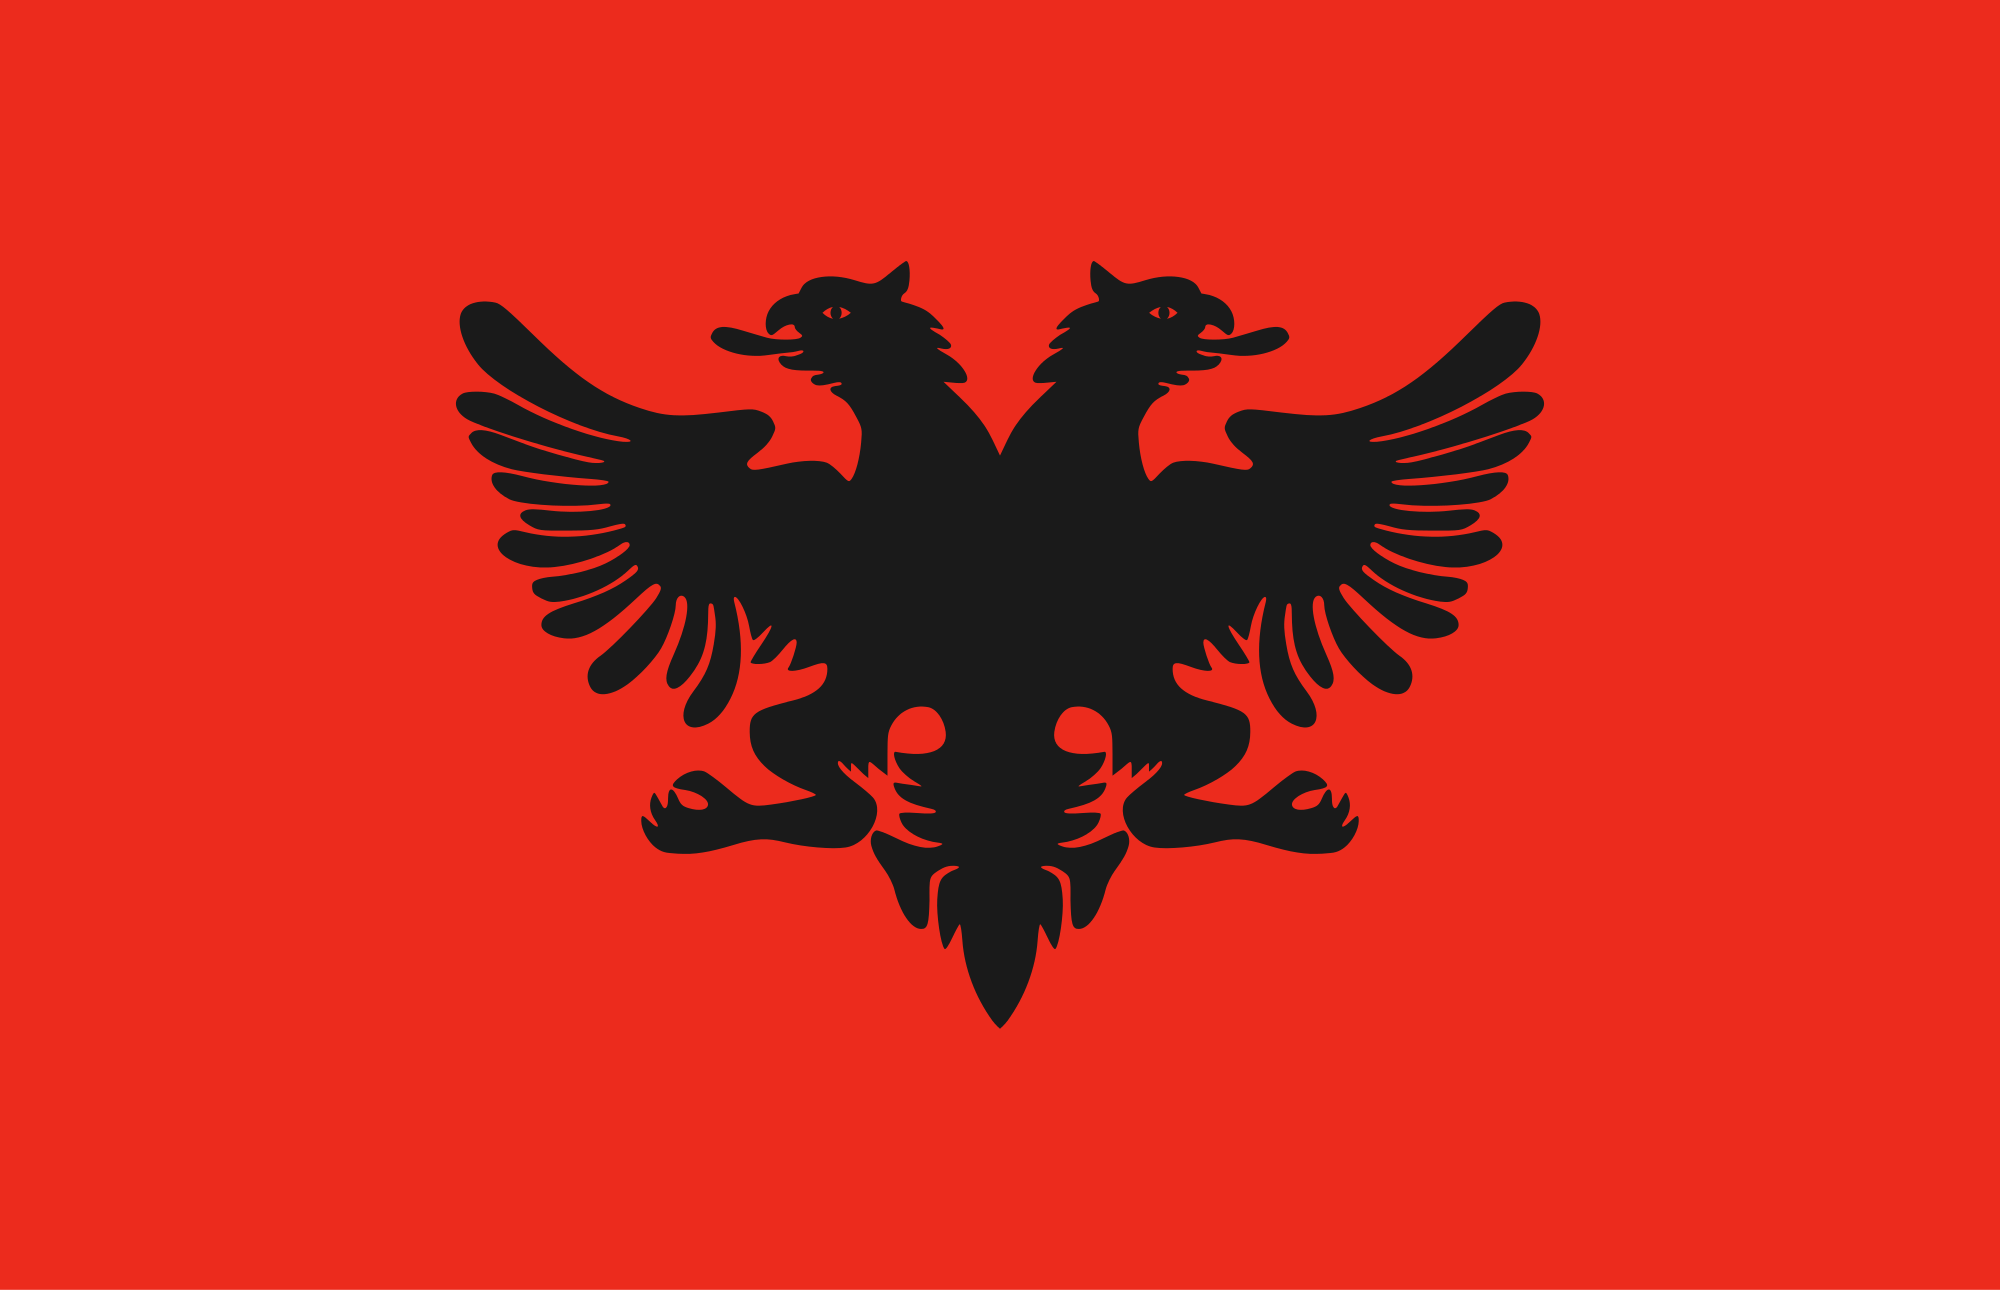 Image Flag Of Albaniapng Travel Wiki FANDOM Powered By Wikia - Albania flag